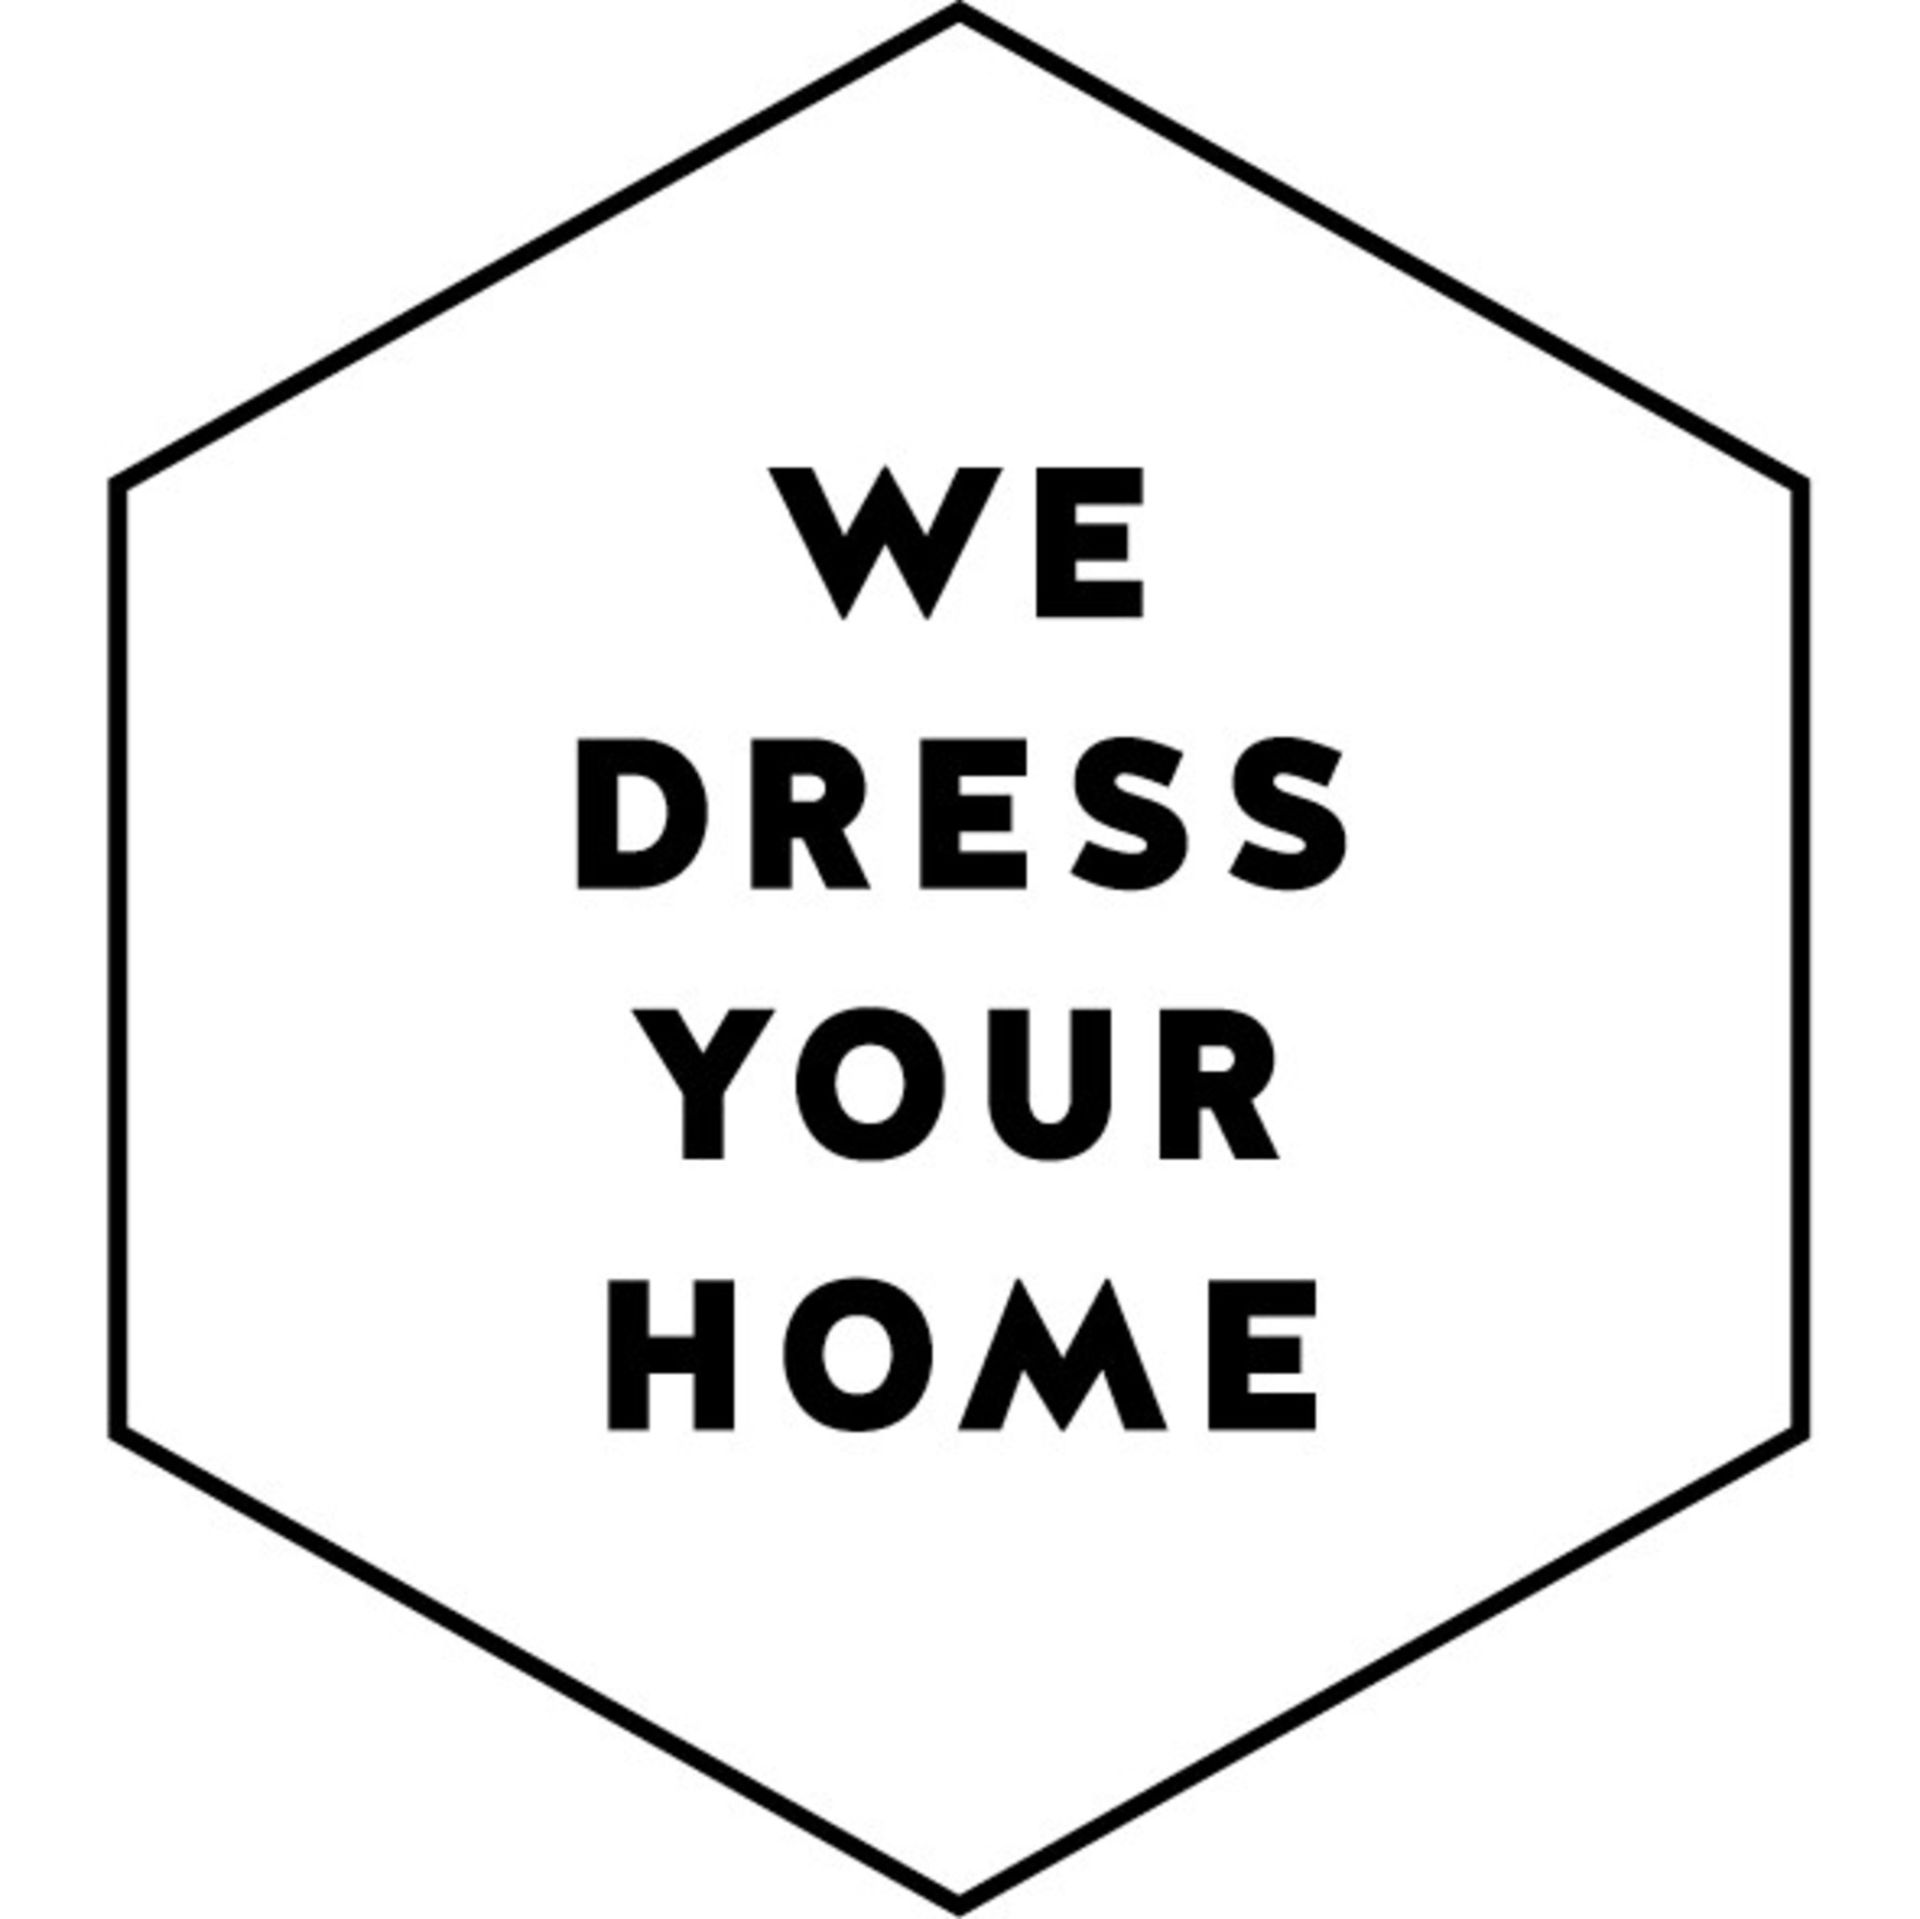 We dress your home - Vivante